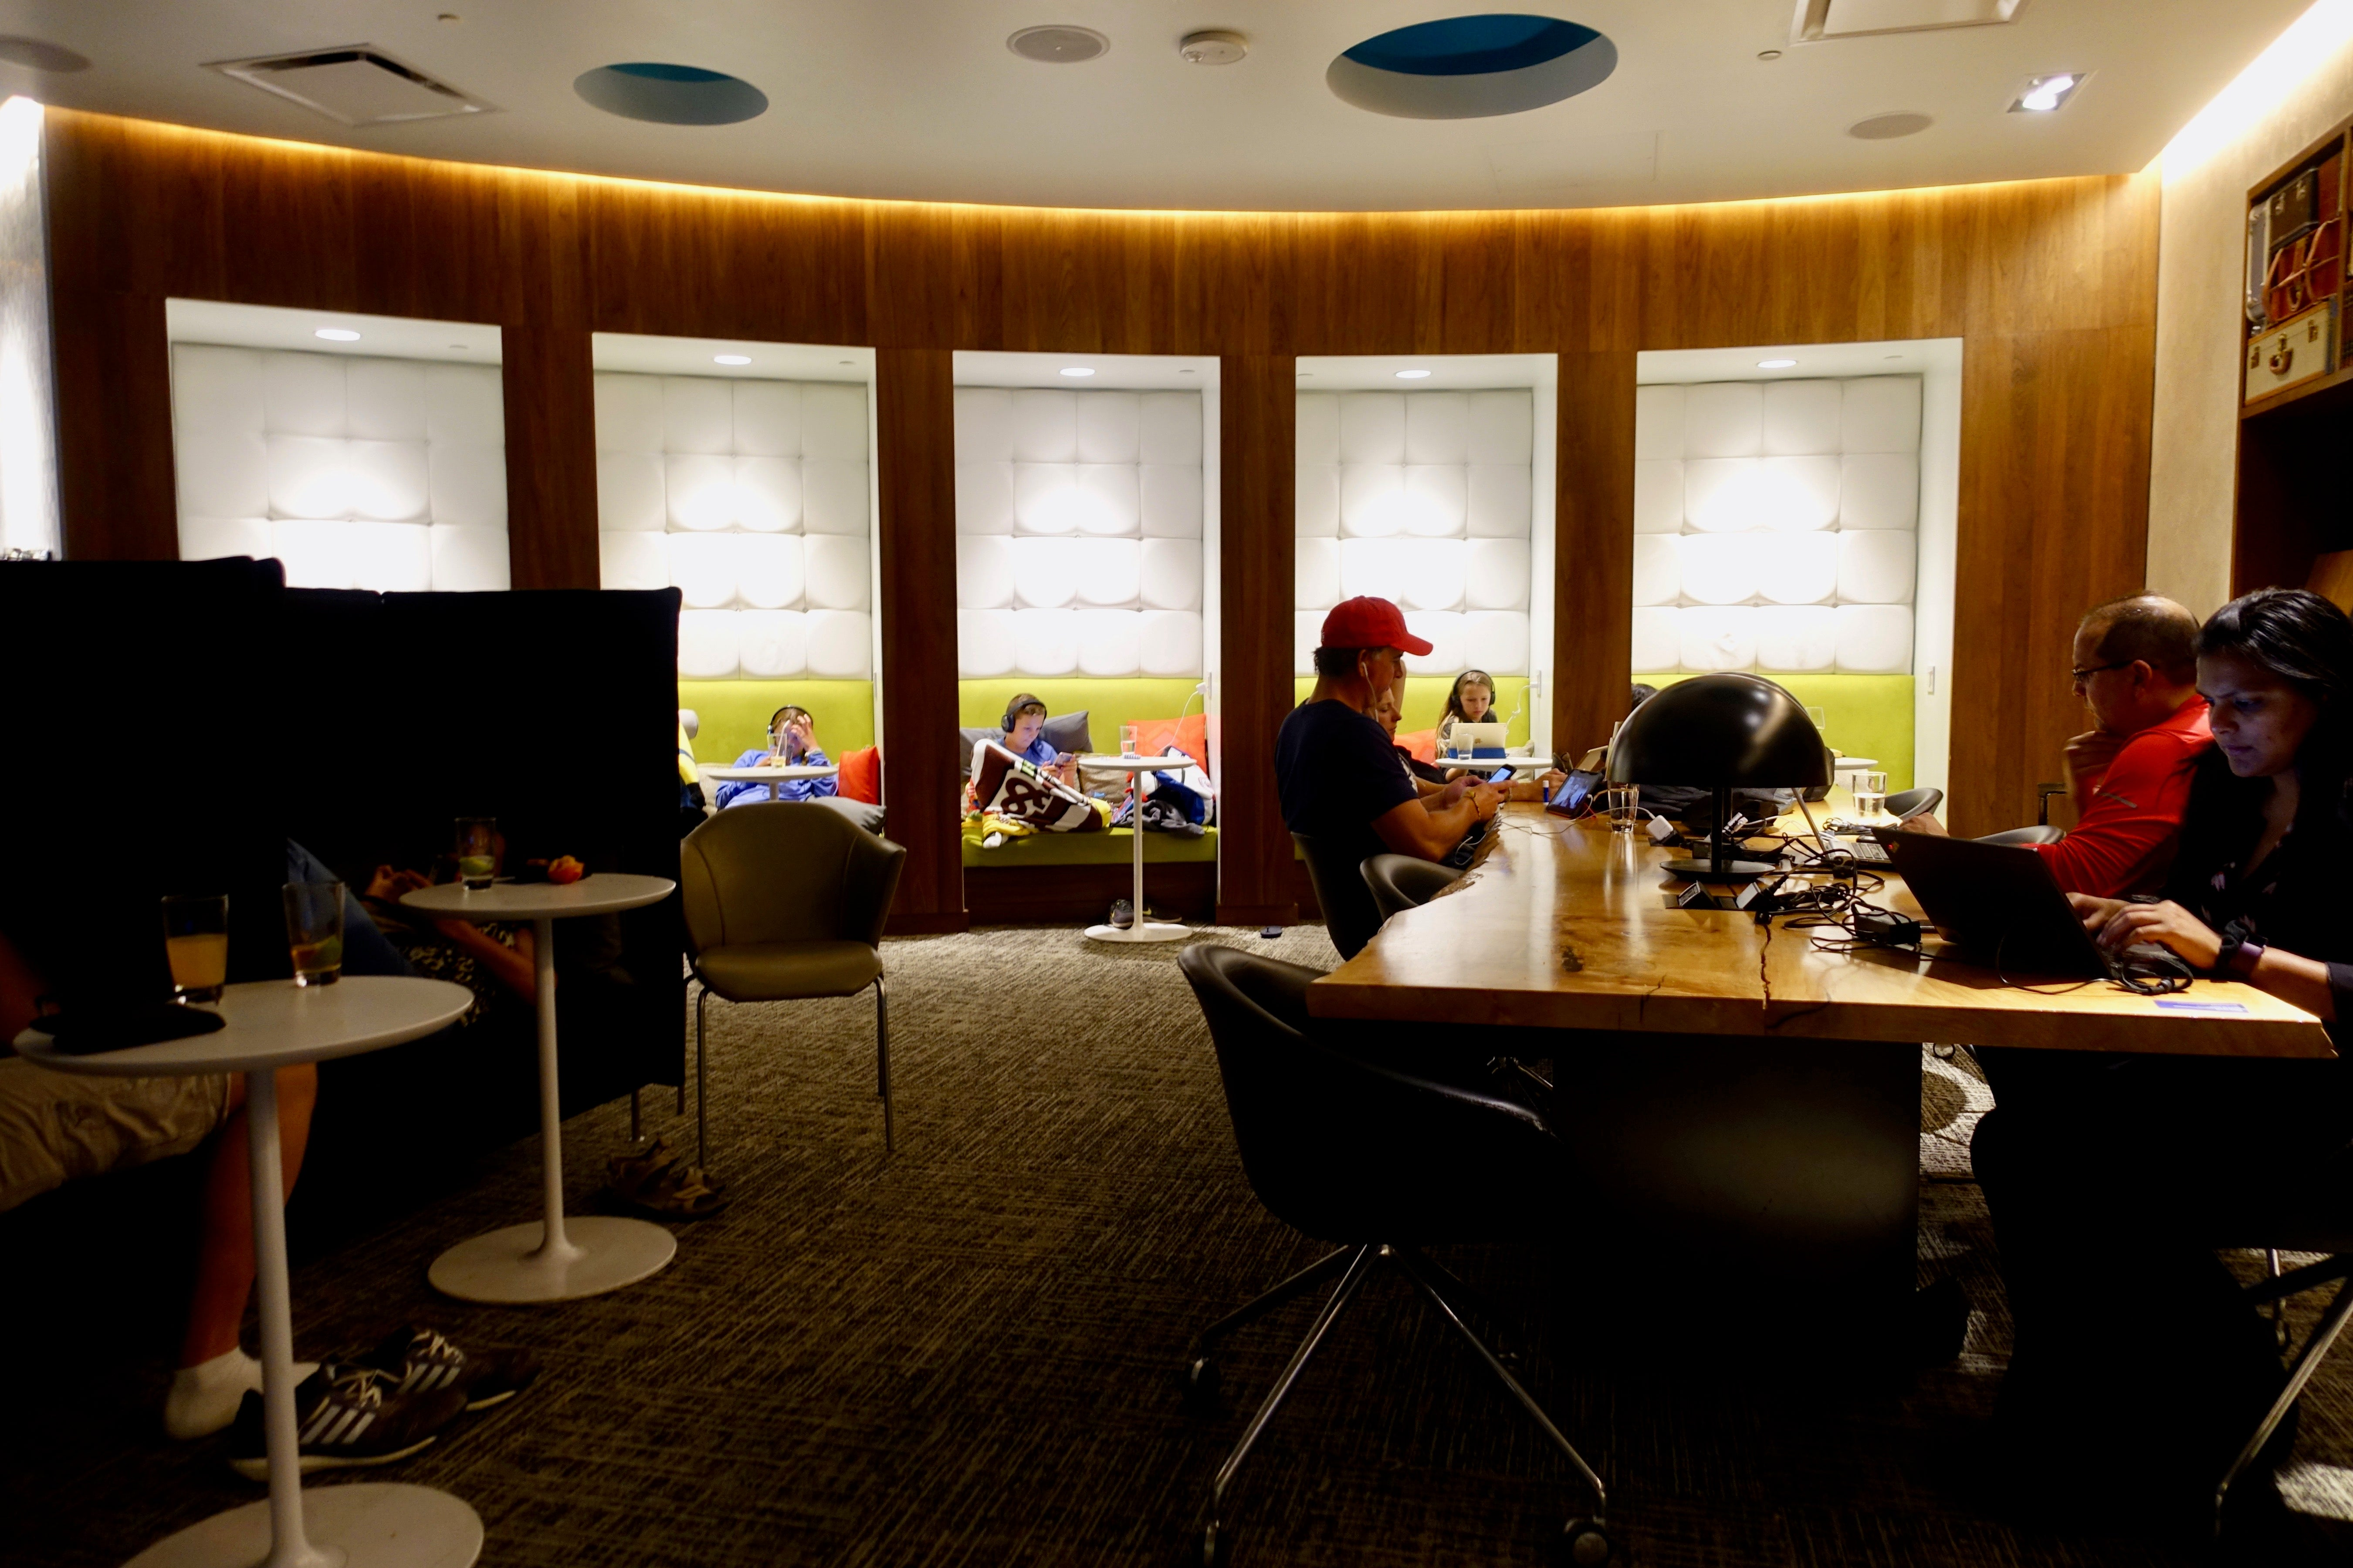 7 Centurion Lounges in 7 Days: The Results